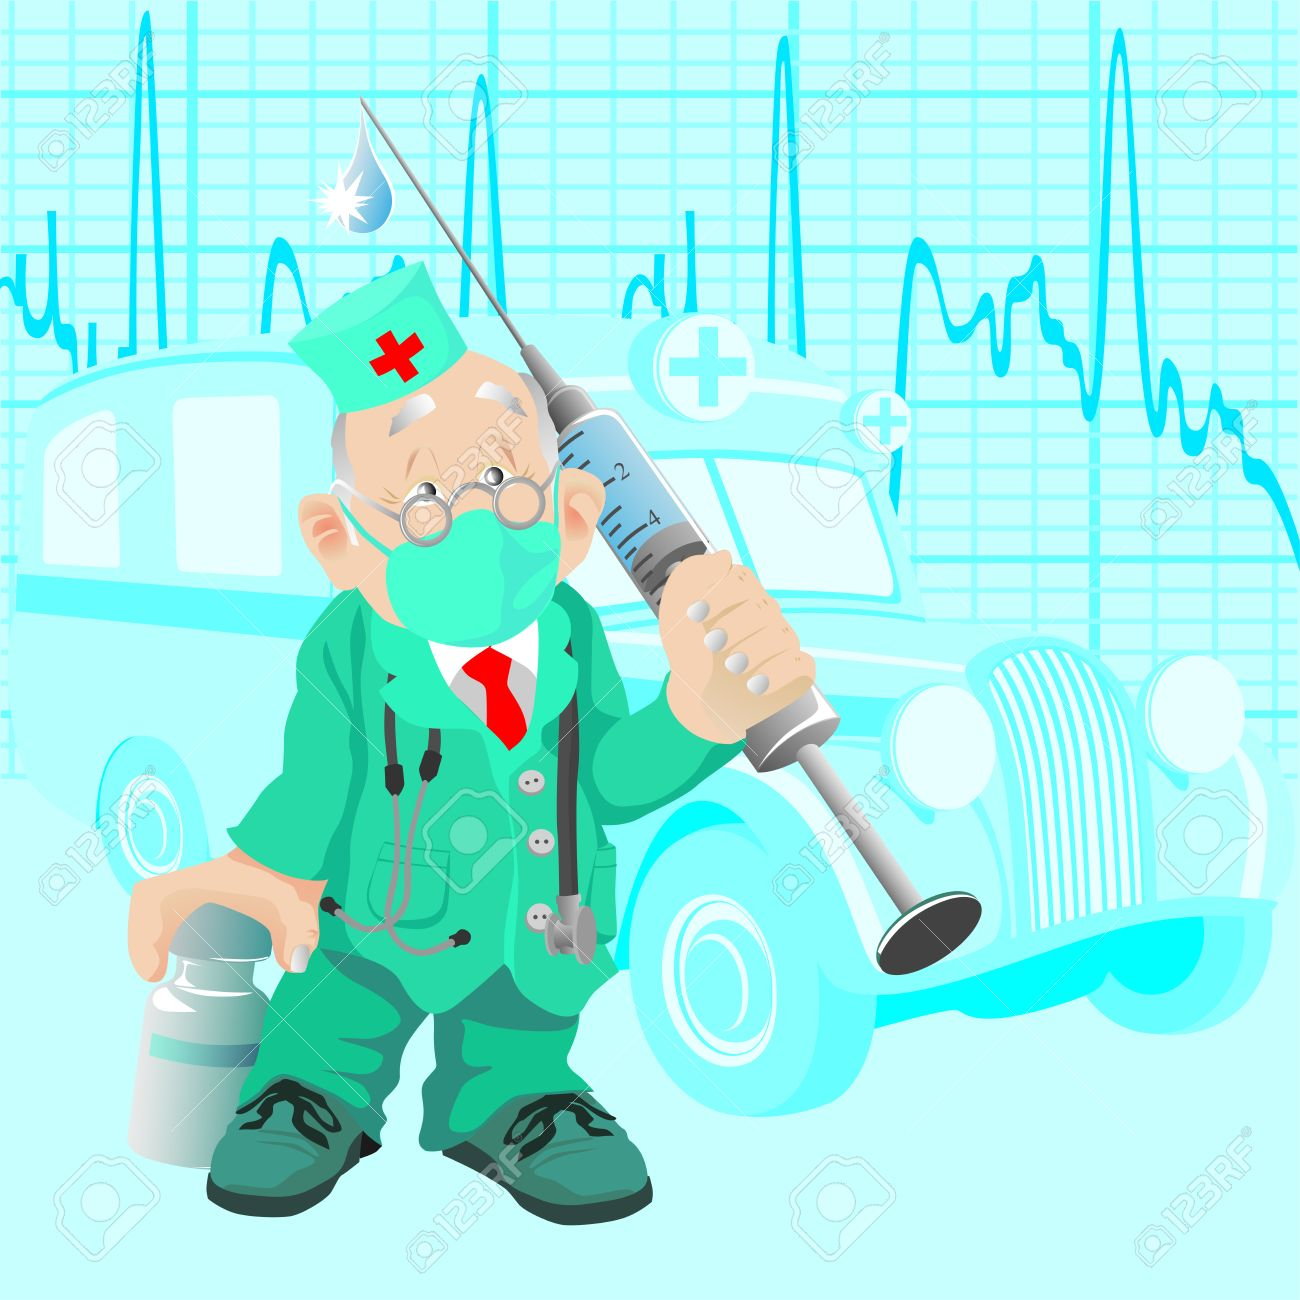 The old doctor with a medicine and a syringe, against old ambulance car - 6839525